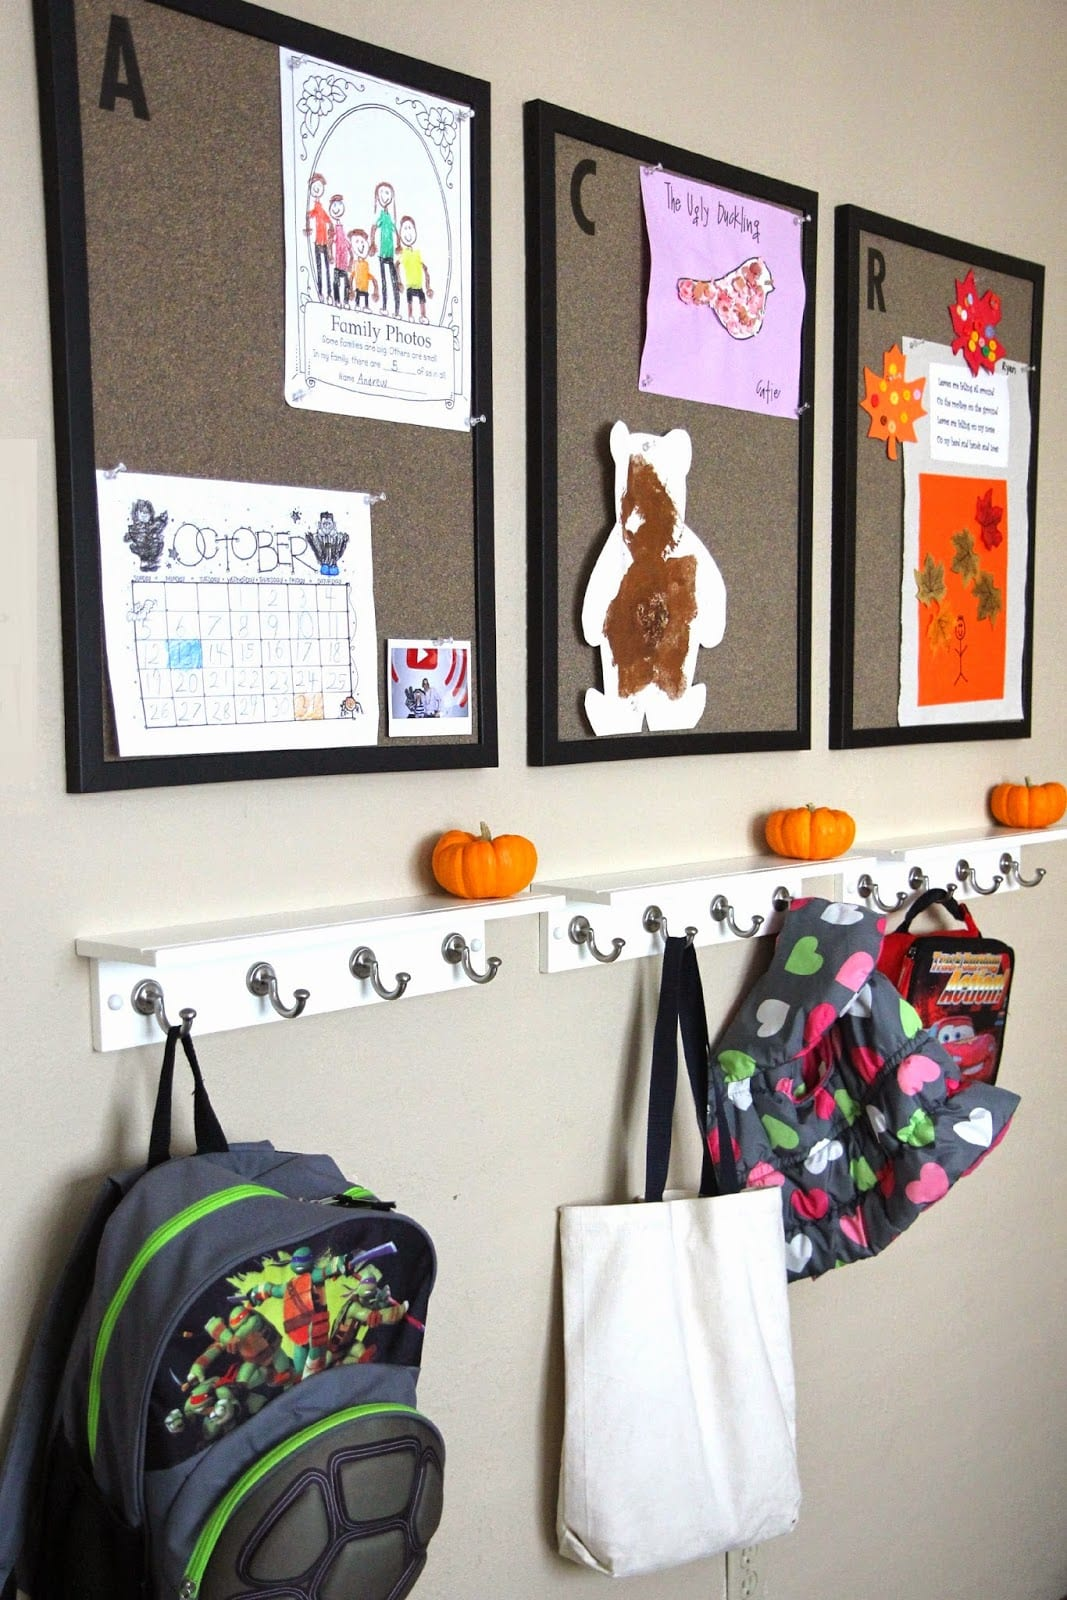 school artwork and bags storage idea